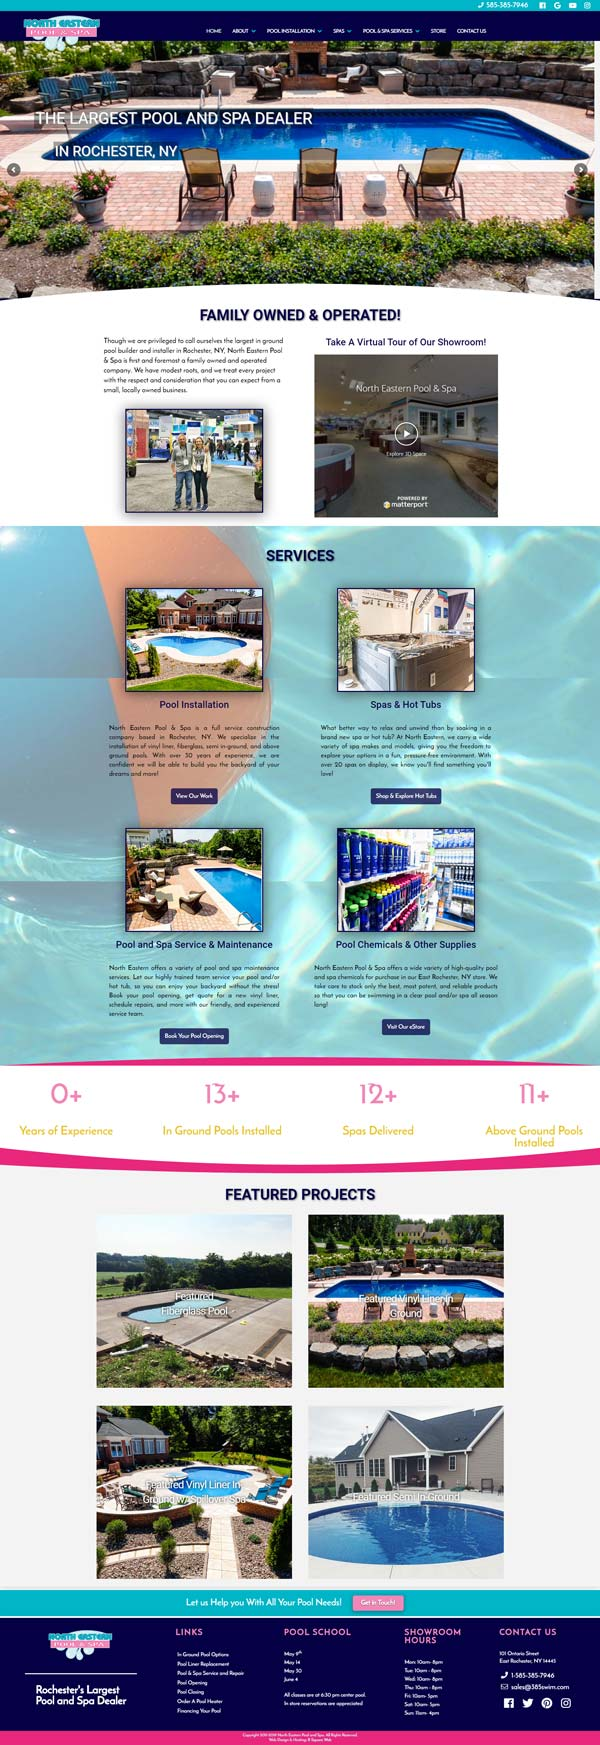 North Eastern Pools & Spas home page screen print